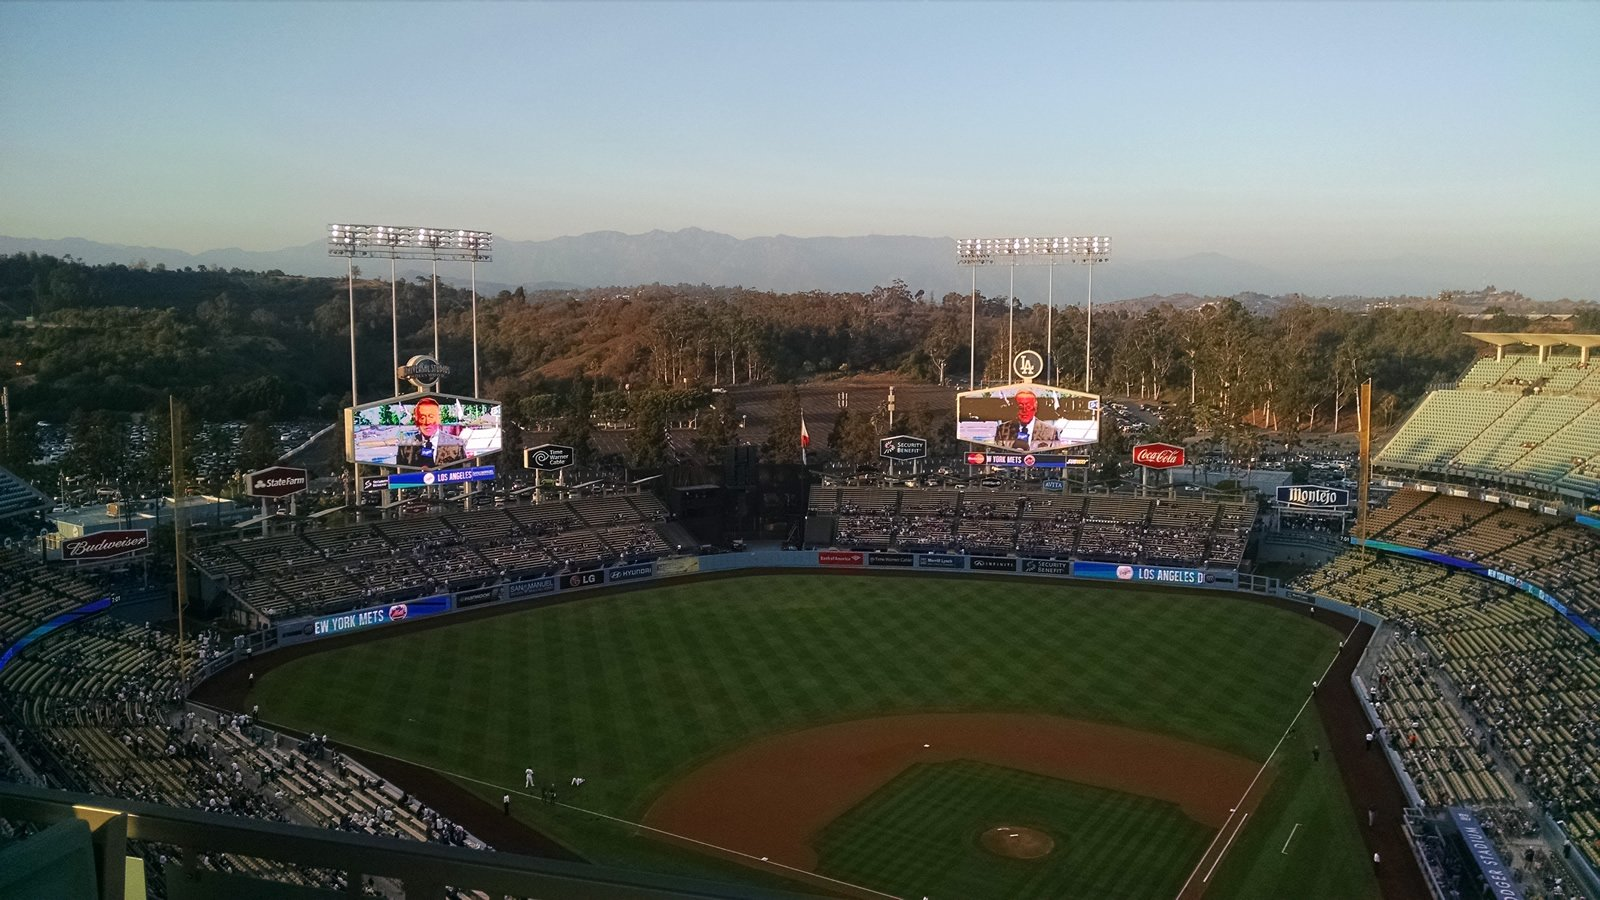 Dodger Stadium Views of the Mountains